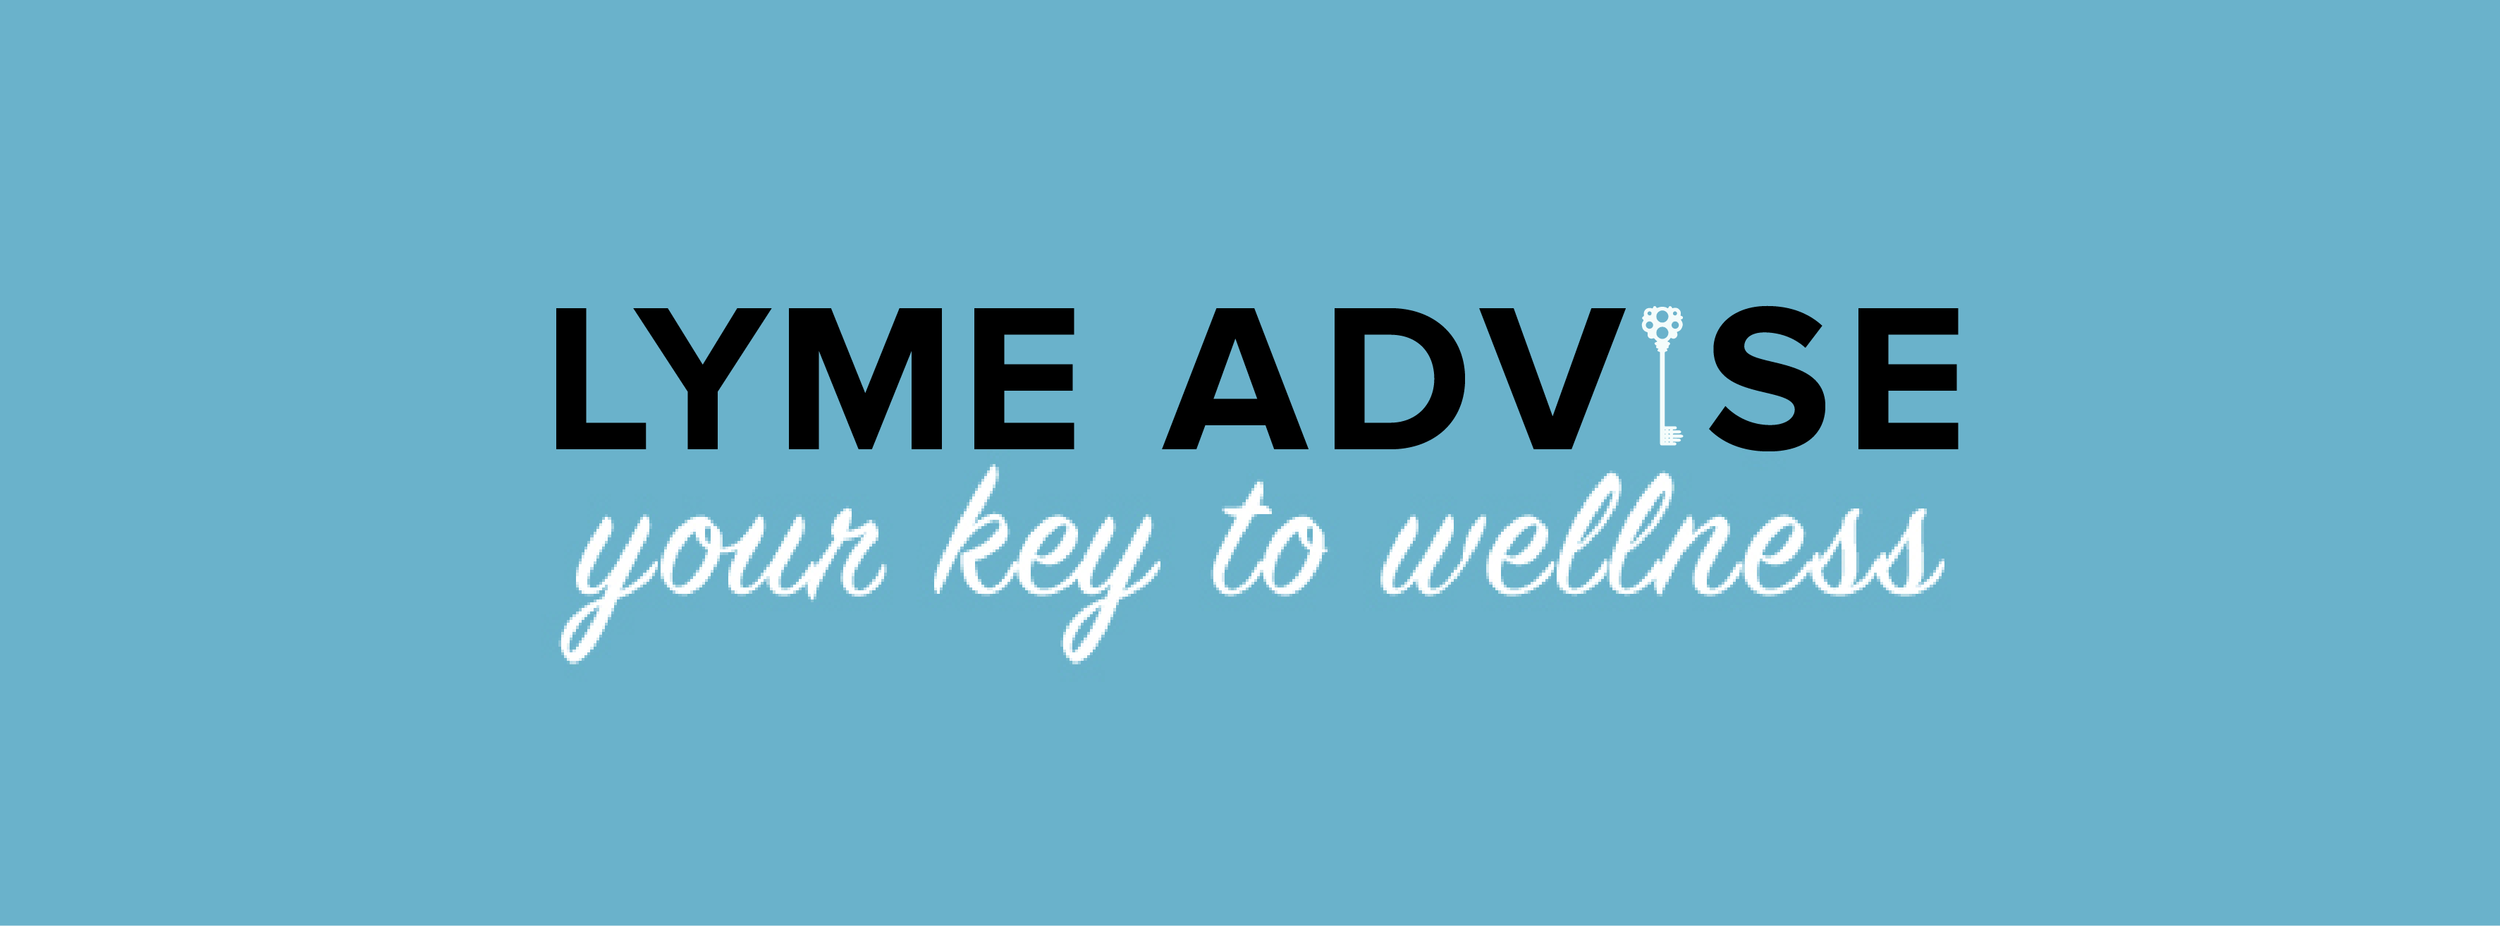 Lyme Advise: Your Key to Wellness